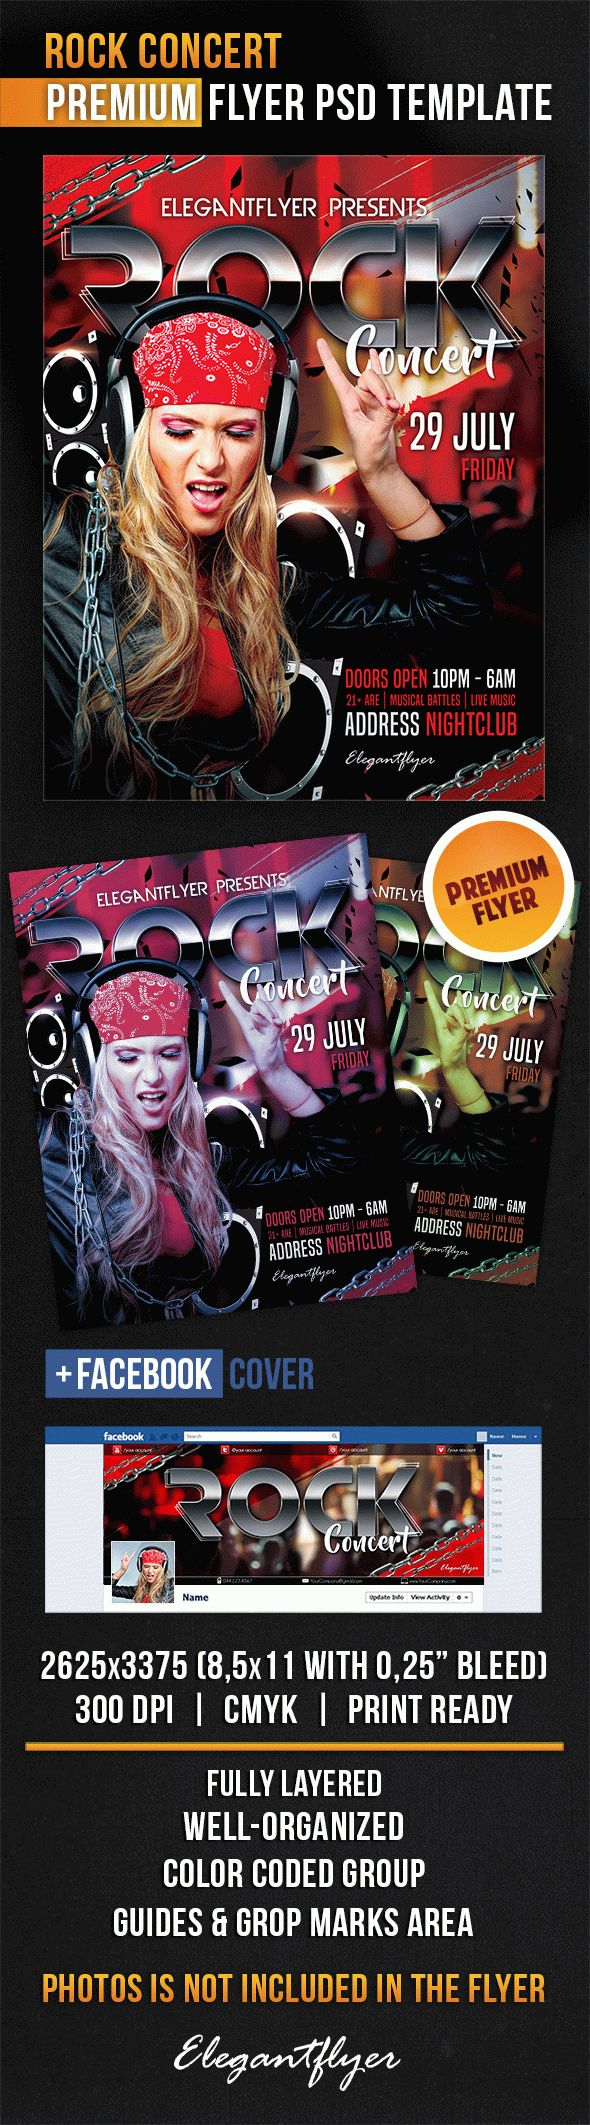 Rock Concert Flyer Template